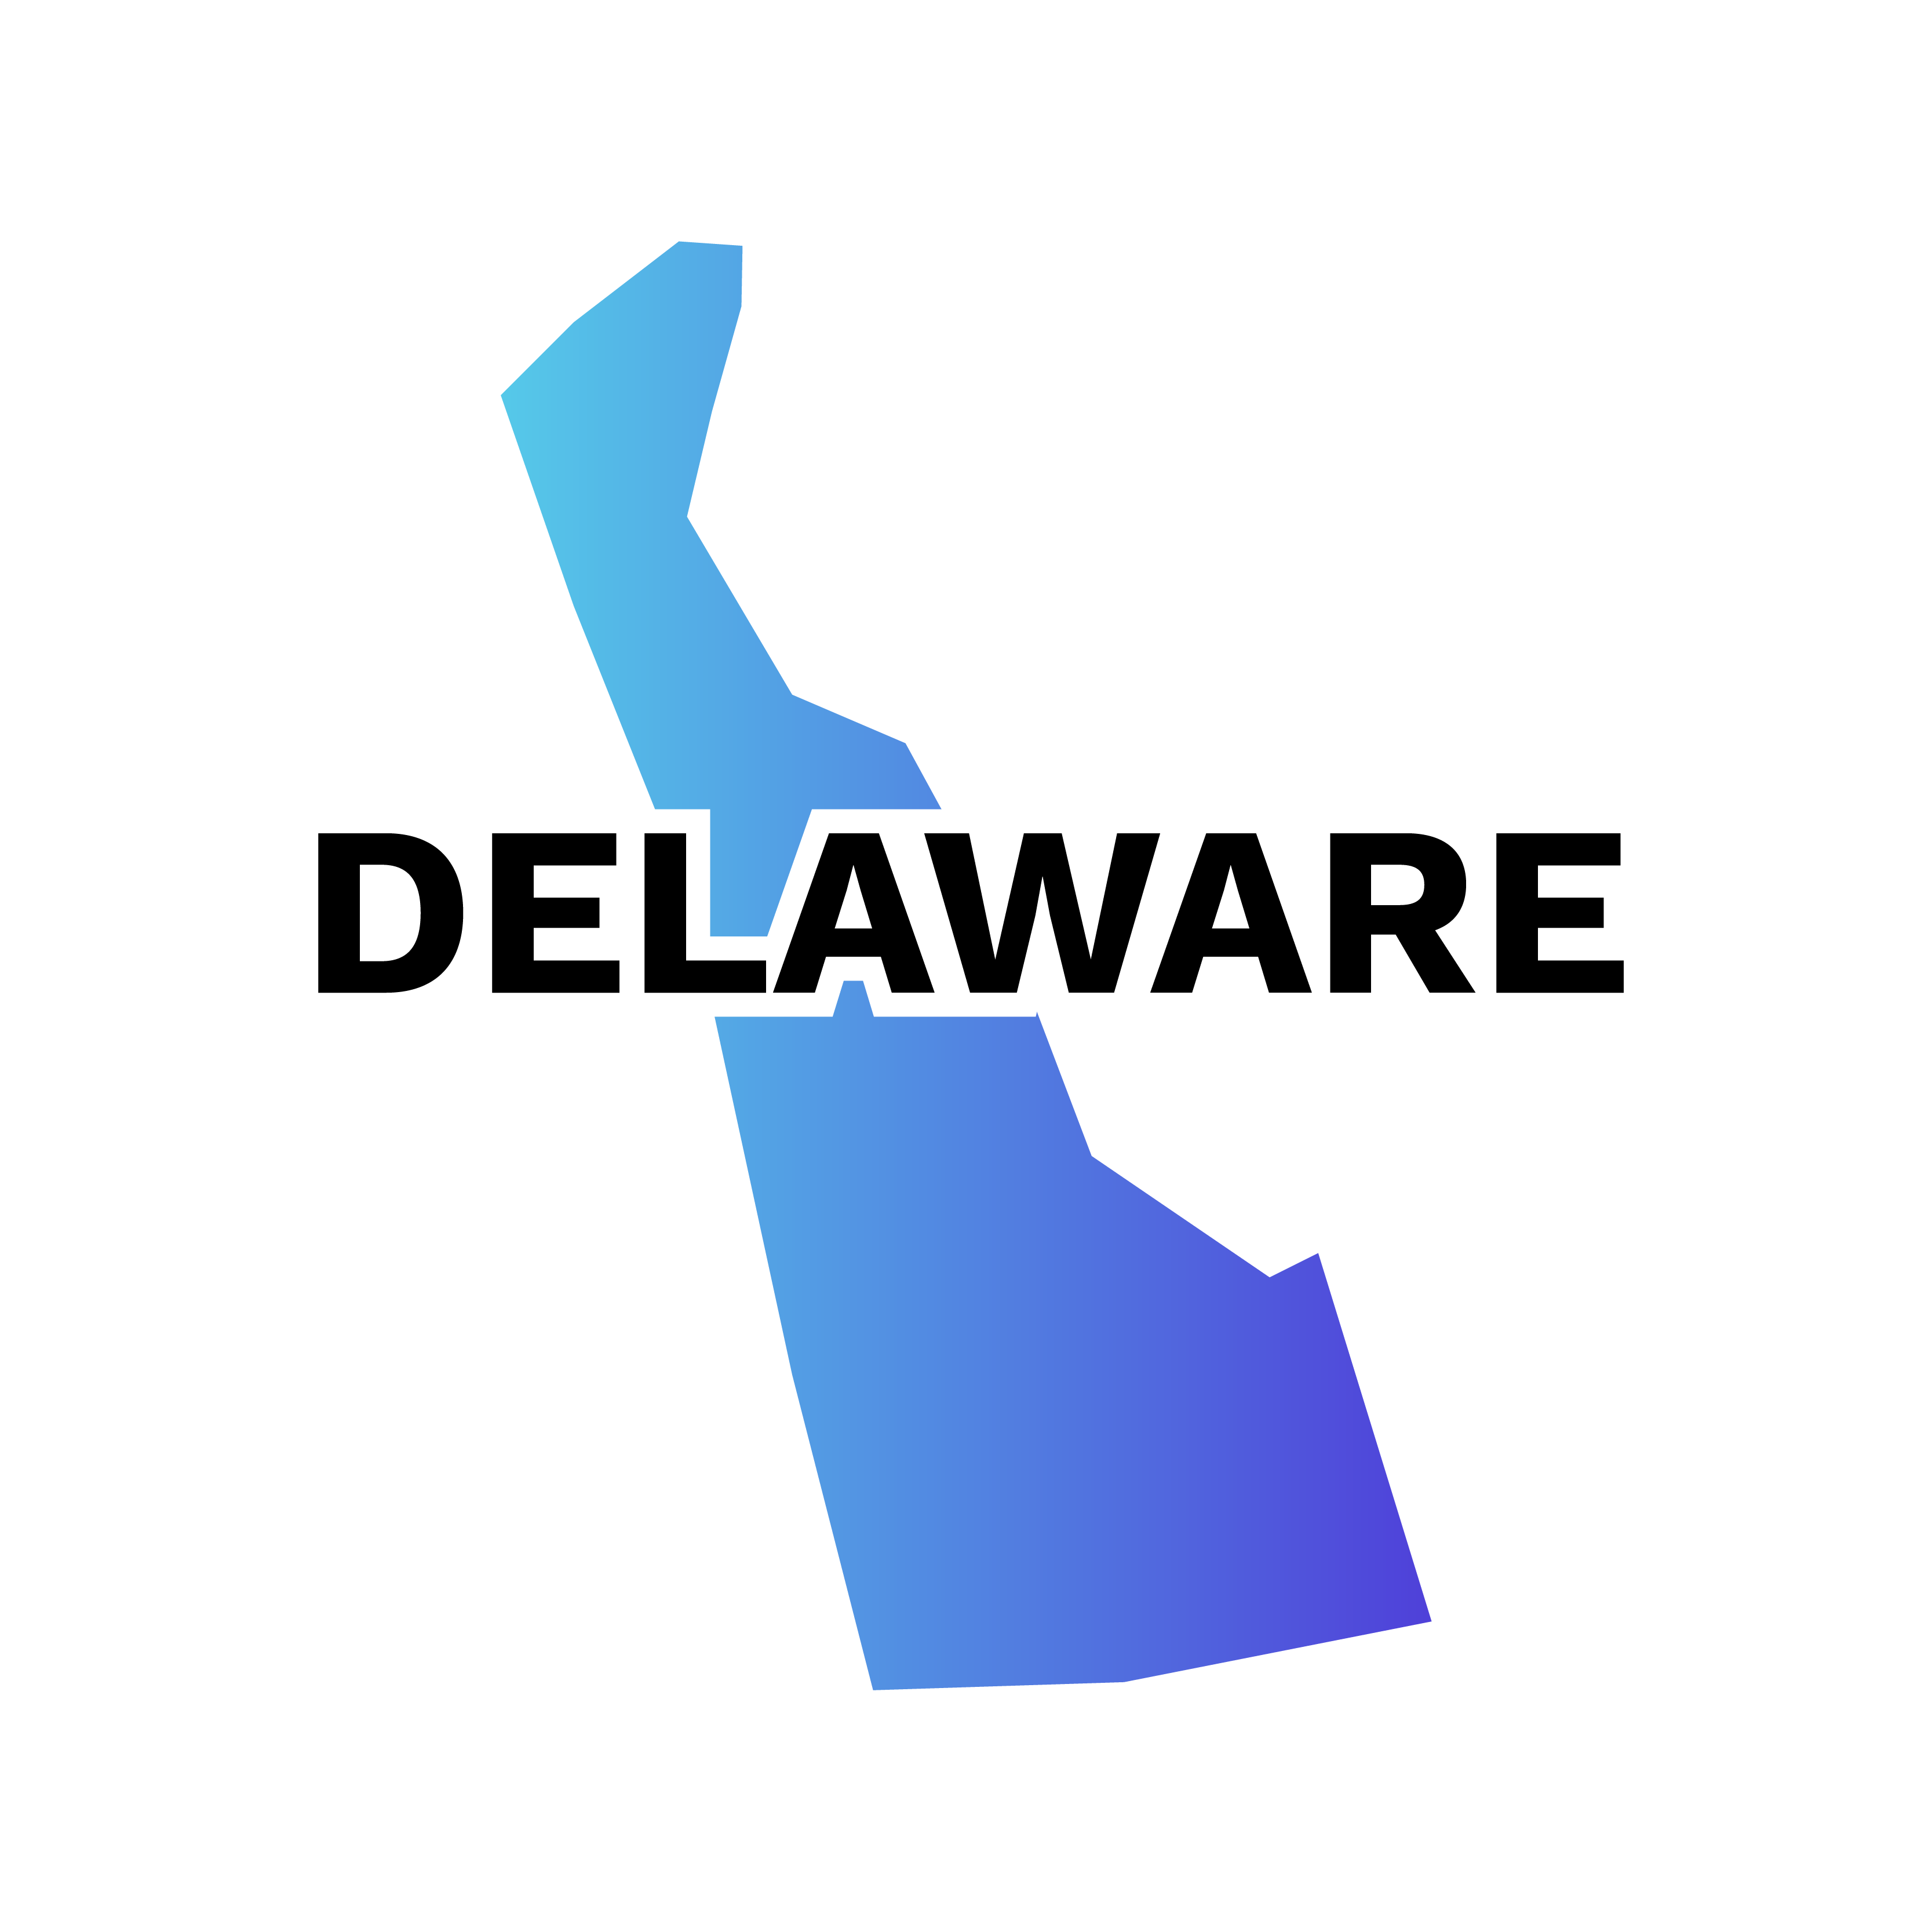 Delaware State Image